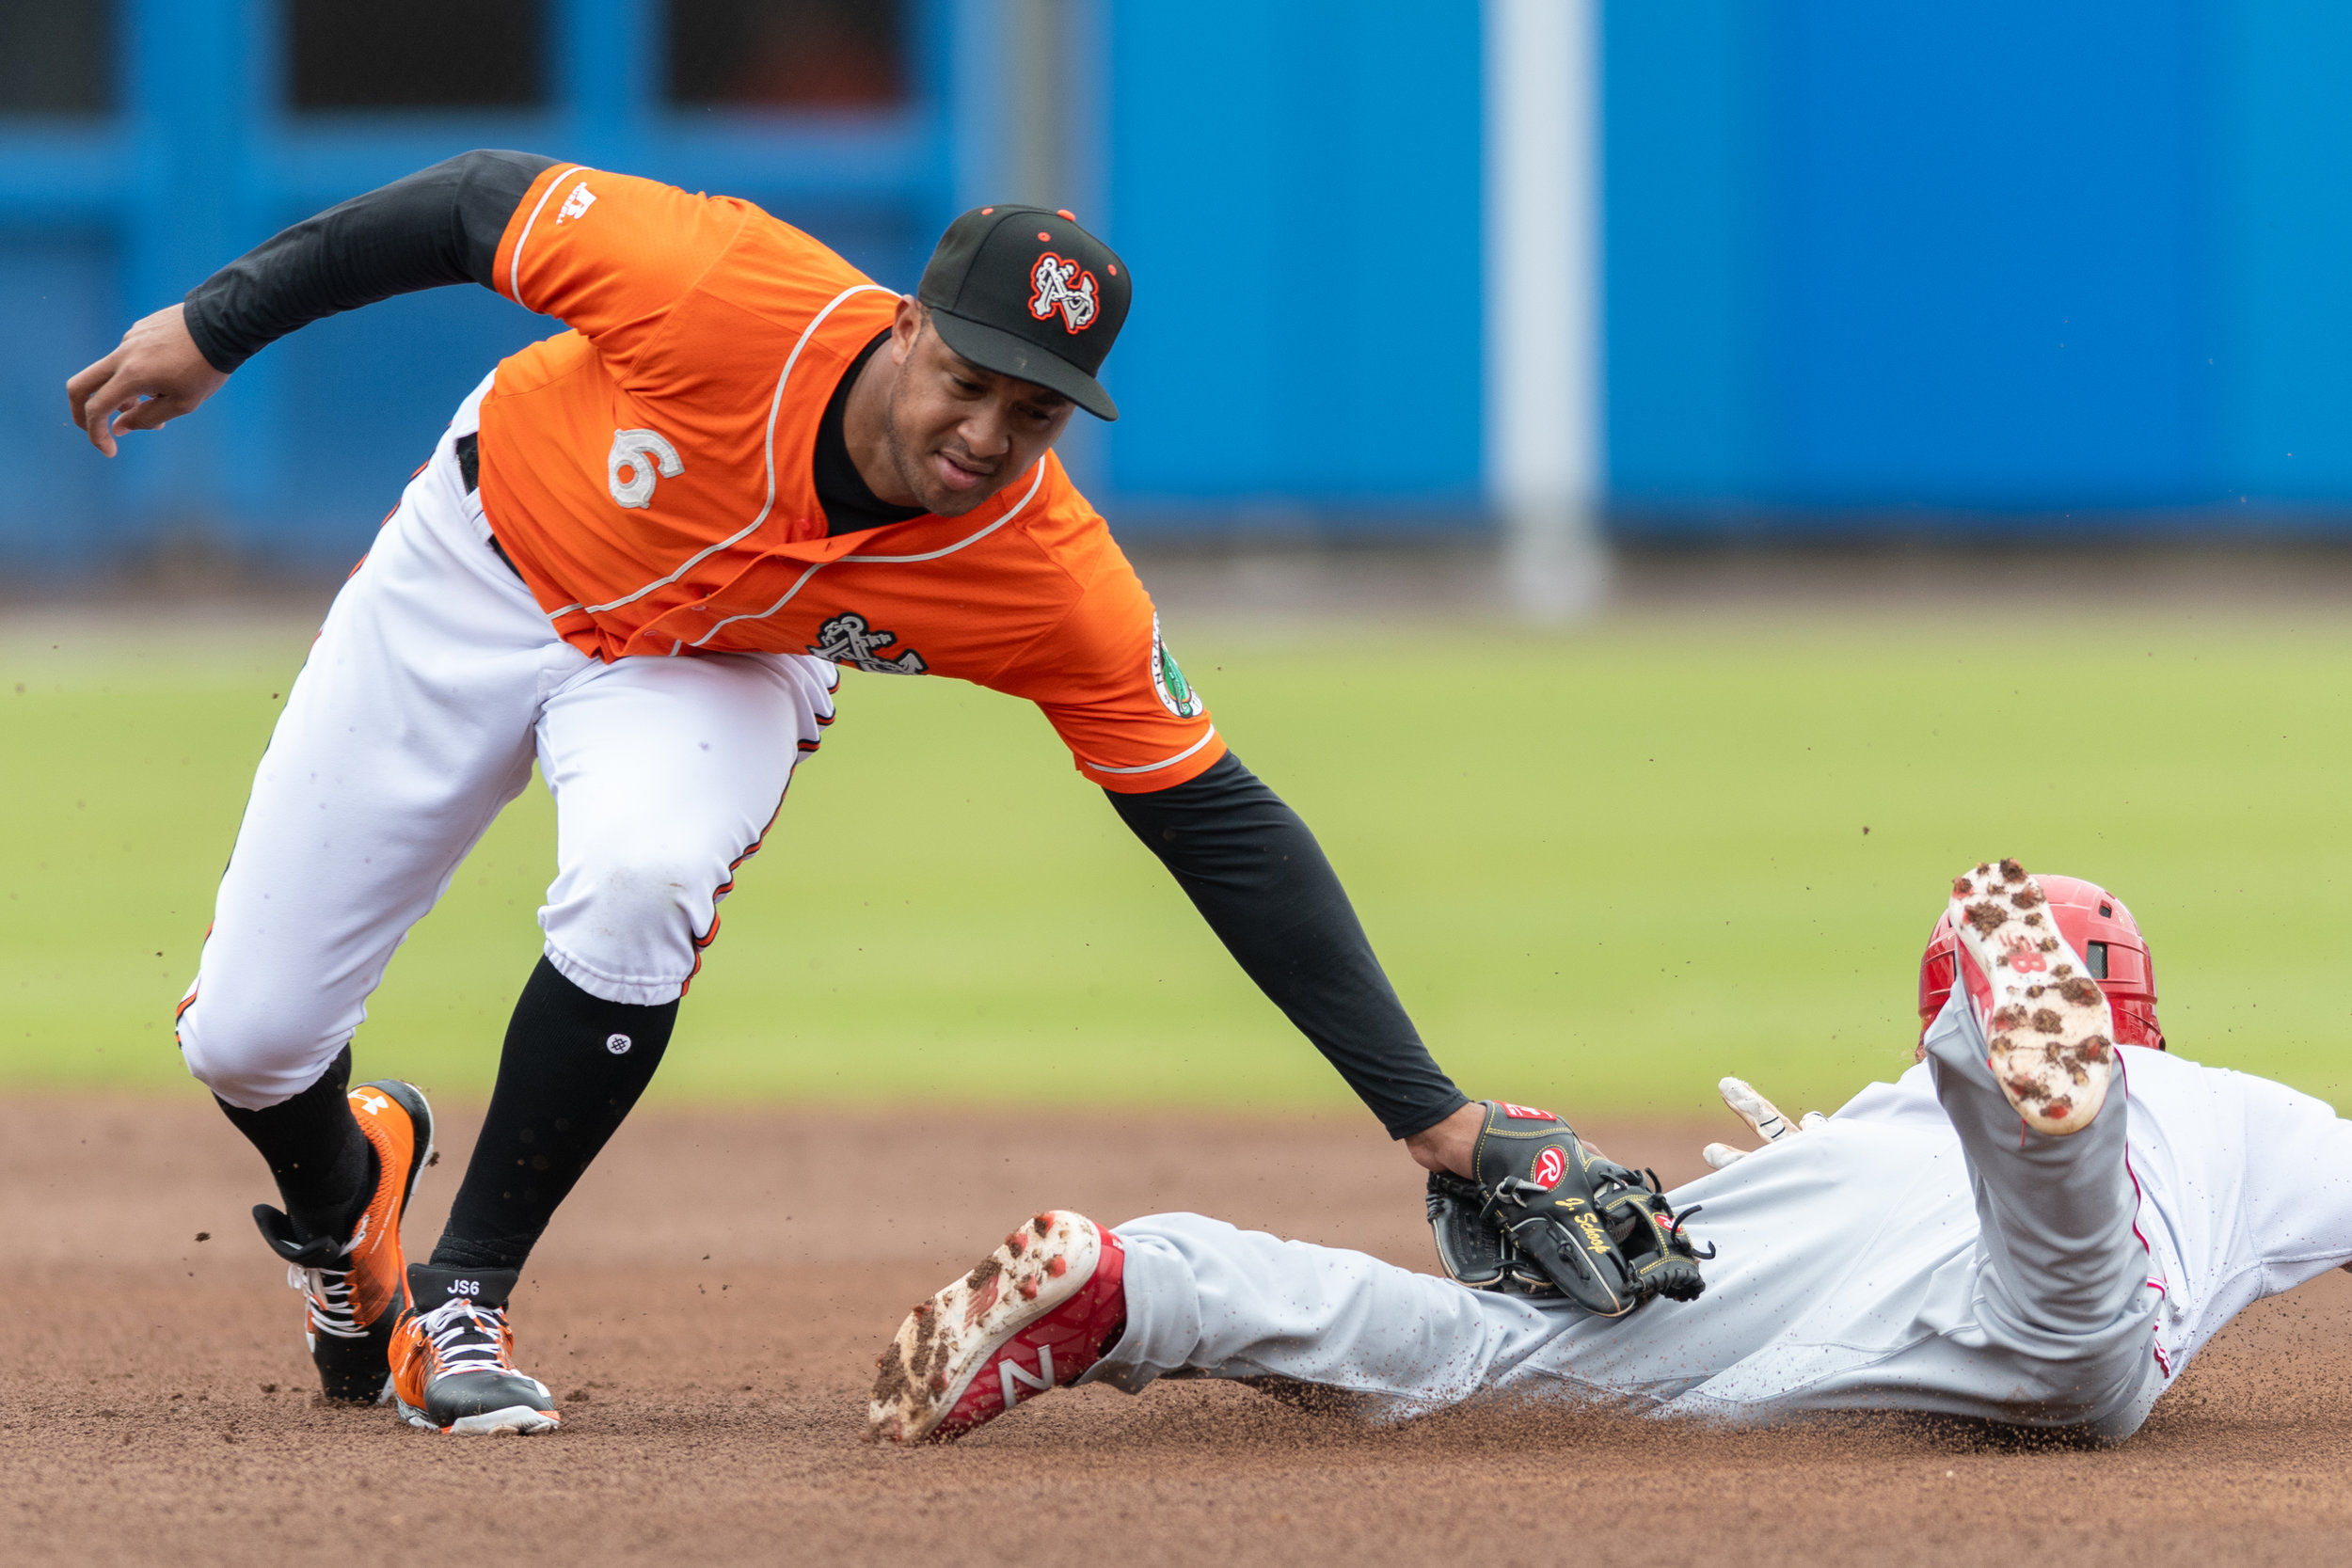 Norfolk Tides second baseman Jonathan Schoop goes for a tag-out at second base against the Louisville Bats during the Sunday, May 6, 2018 game at Harbor Park. The Tides defeated the Bats 2 - 1.